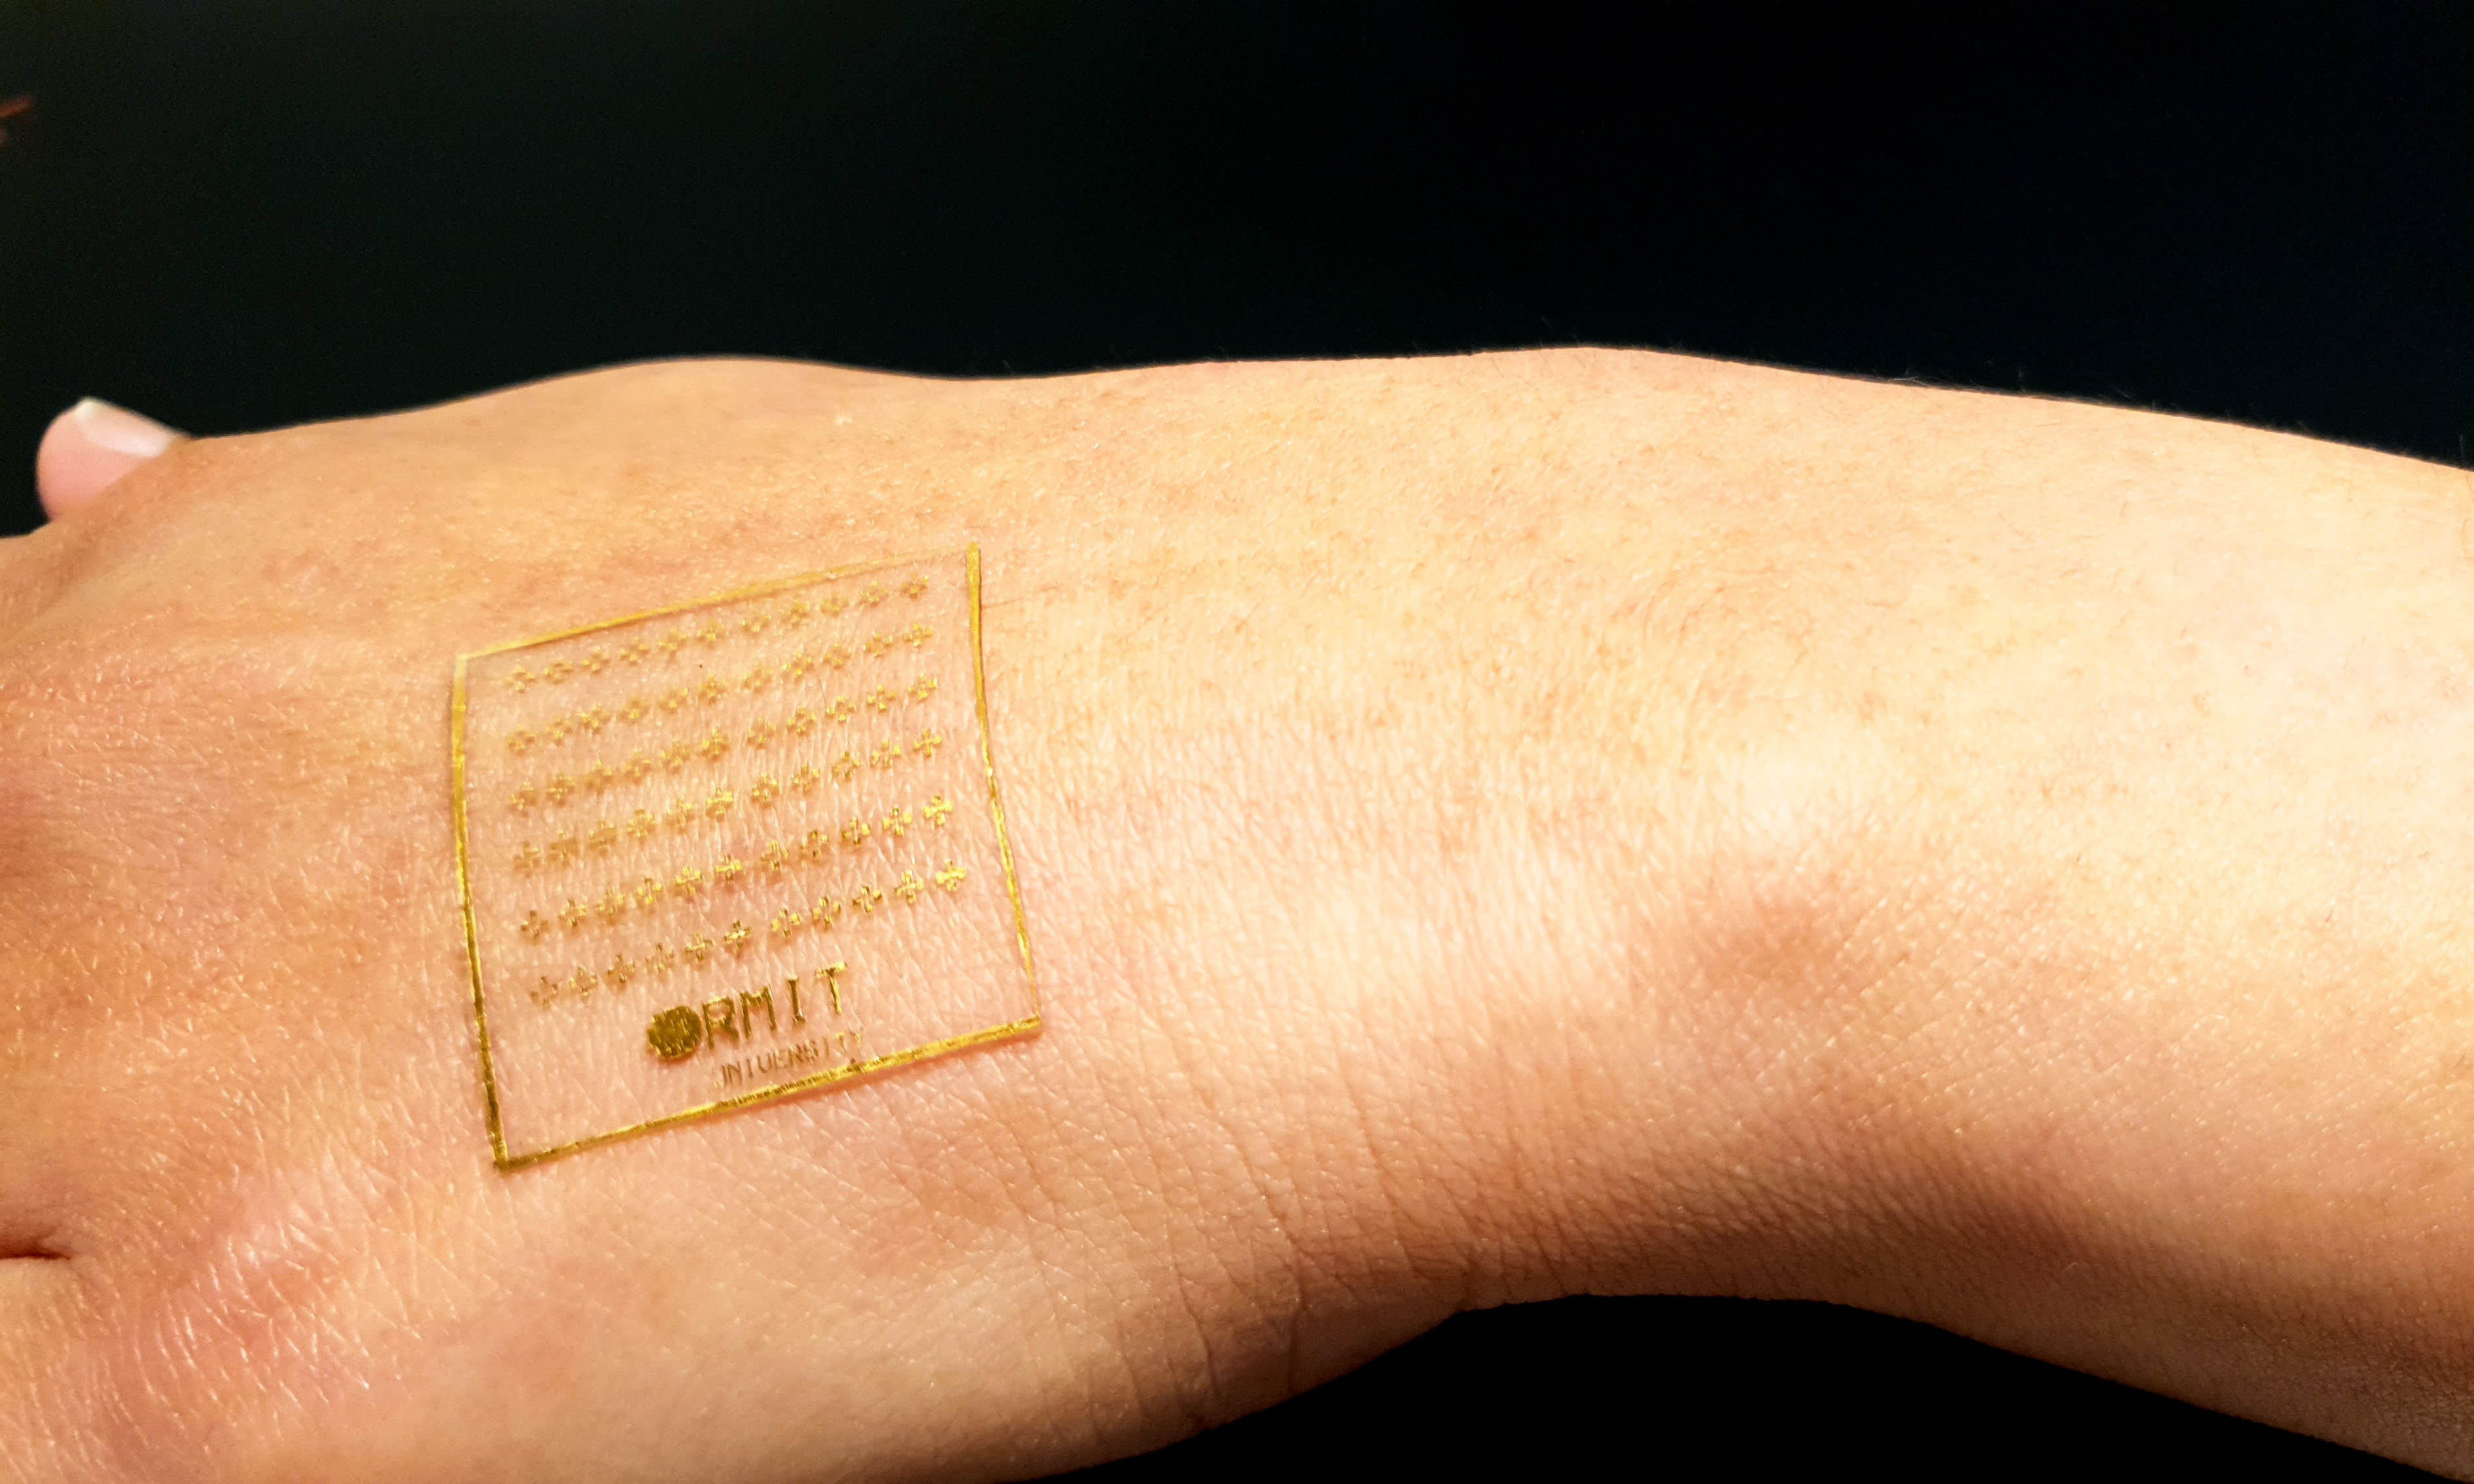 Clear stretchable electronic device on the back of a hand.